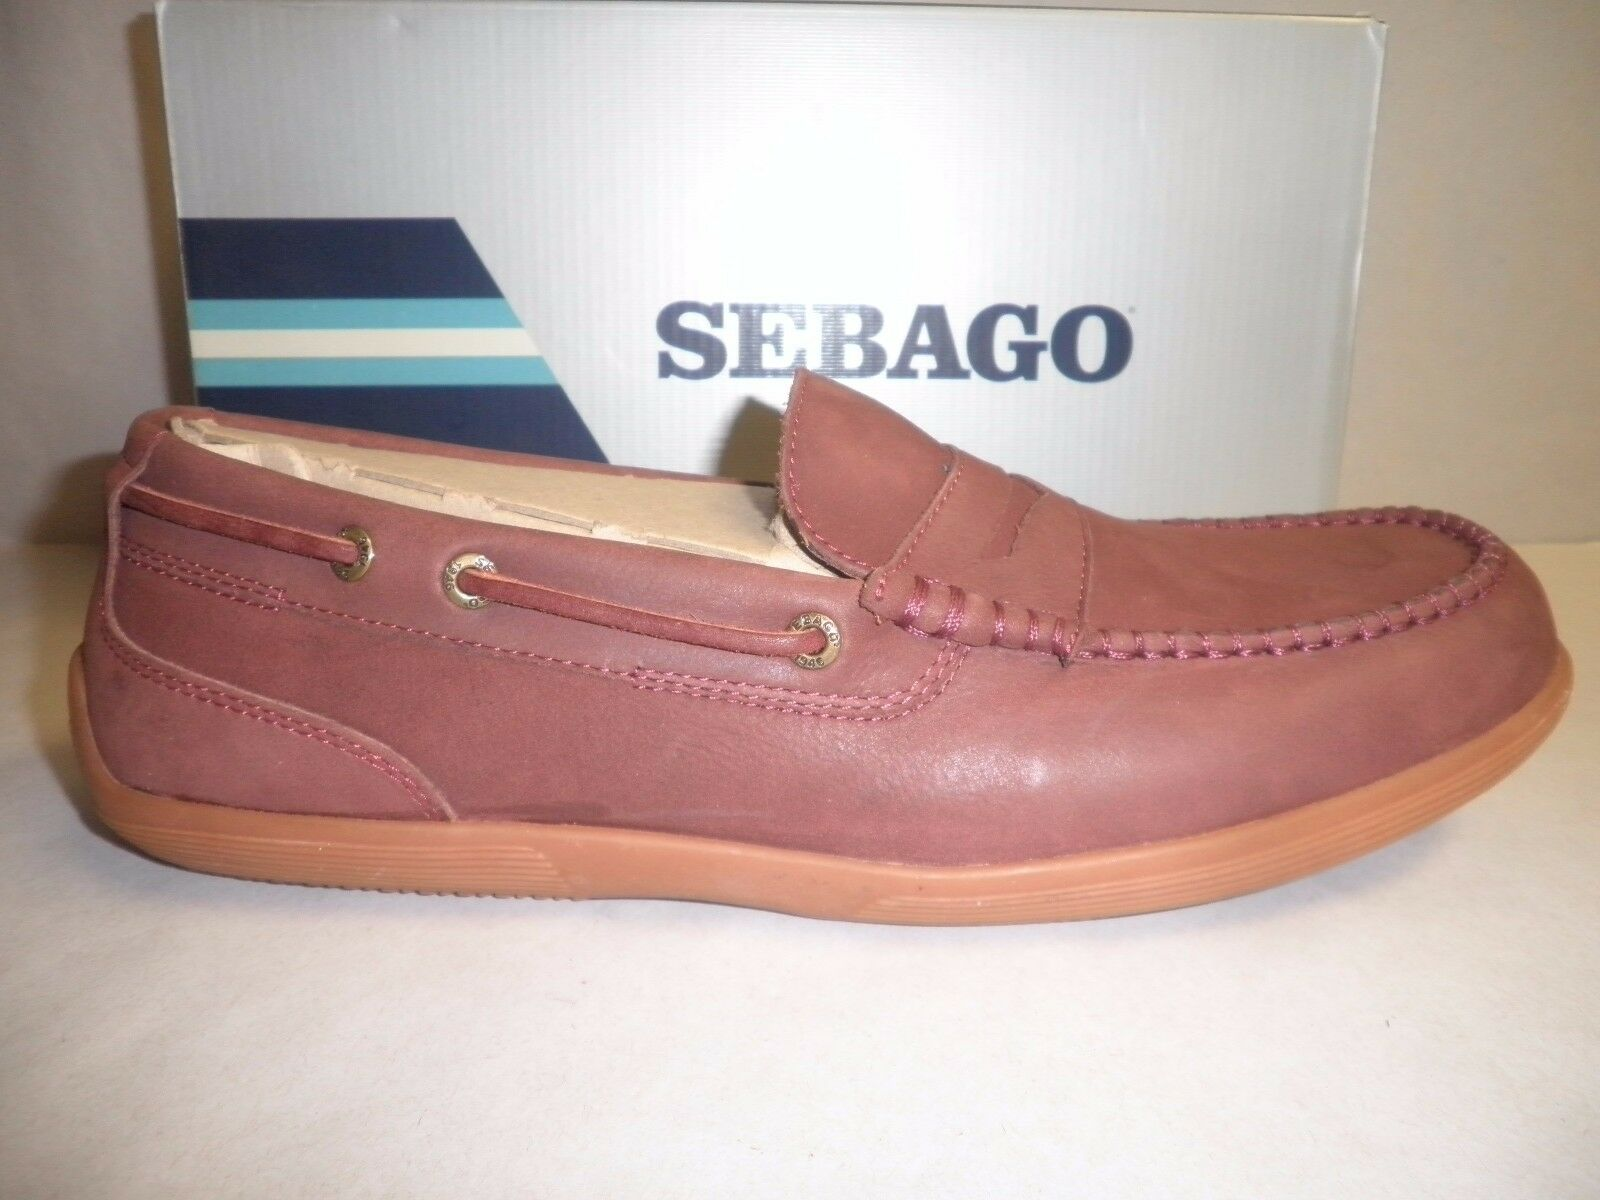 Sebago Size 11 M NANTUCKET CLASSIC Merlot Slip On Leather Loafers New Mens shoes